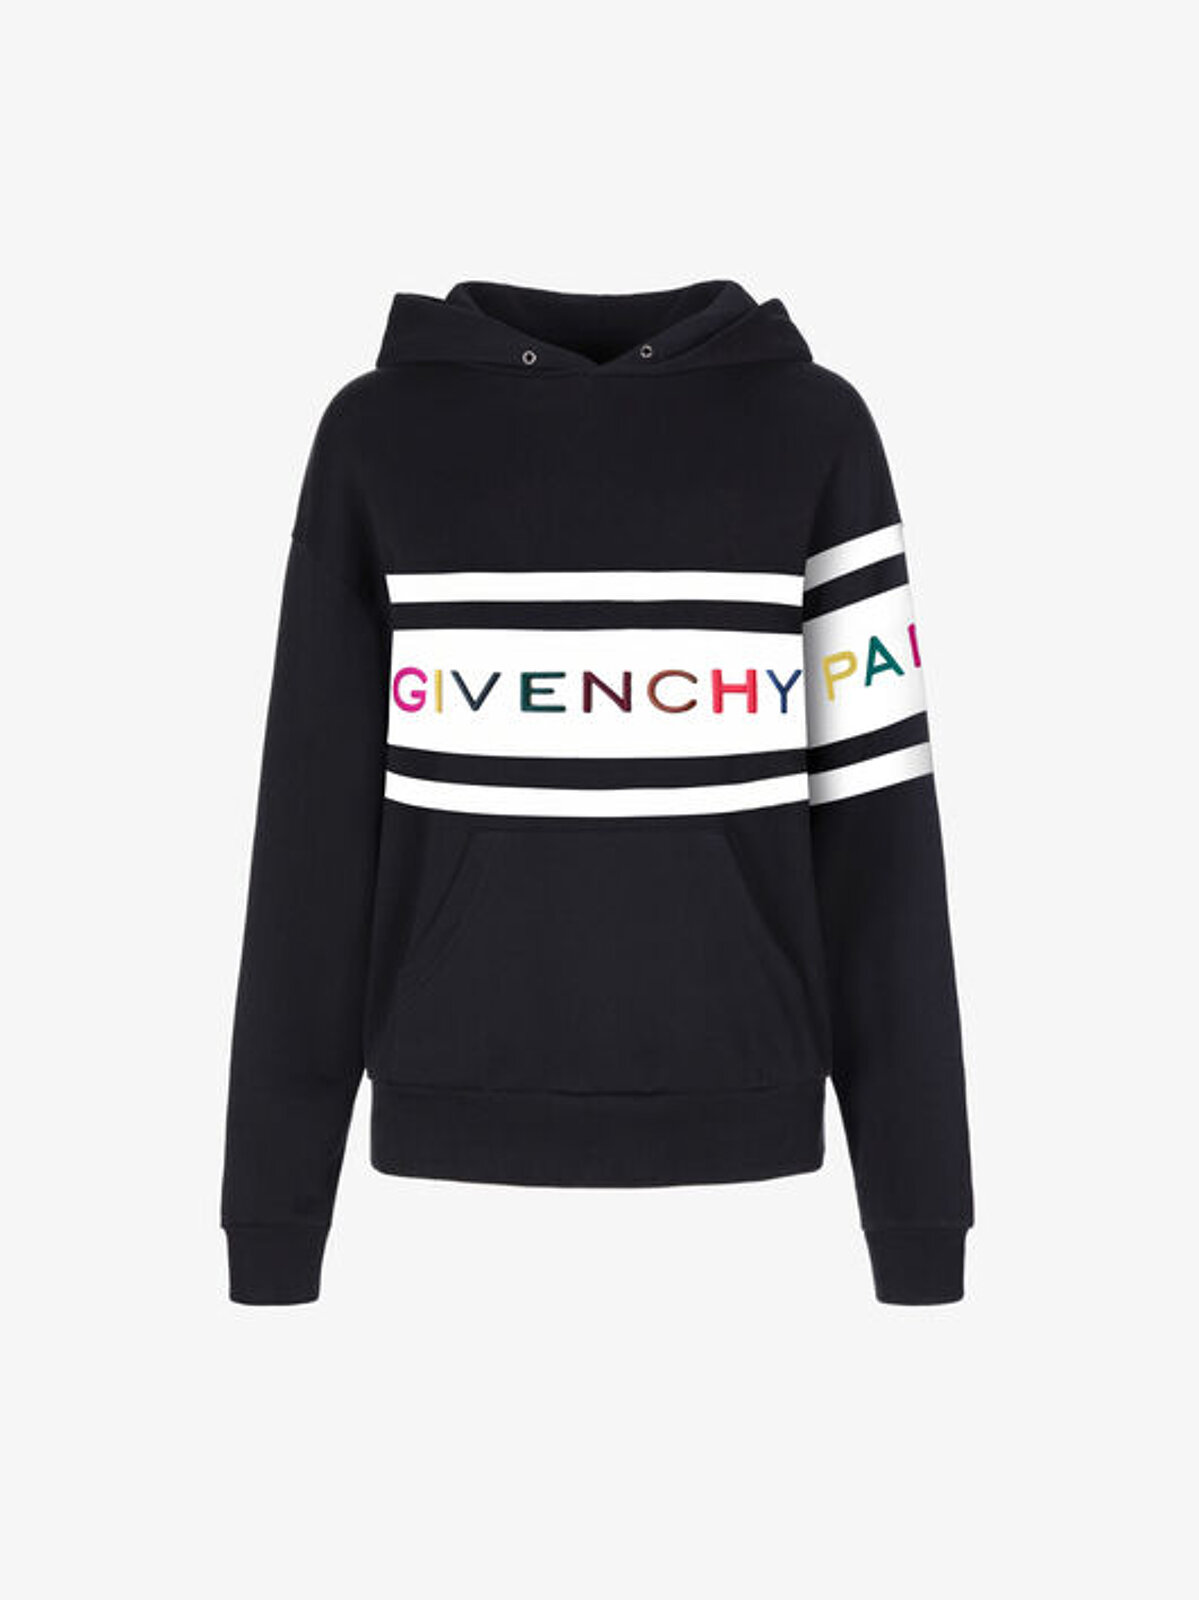 Hooded Sweatshirt With Givenchy Paris Embroidery - Givenchy